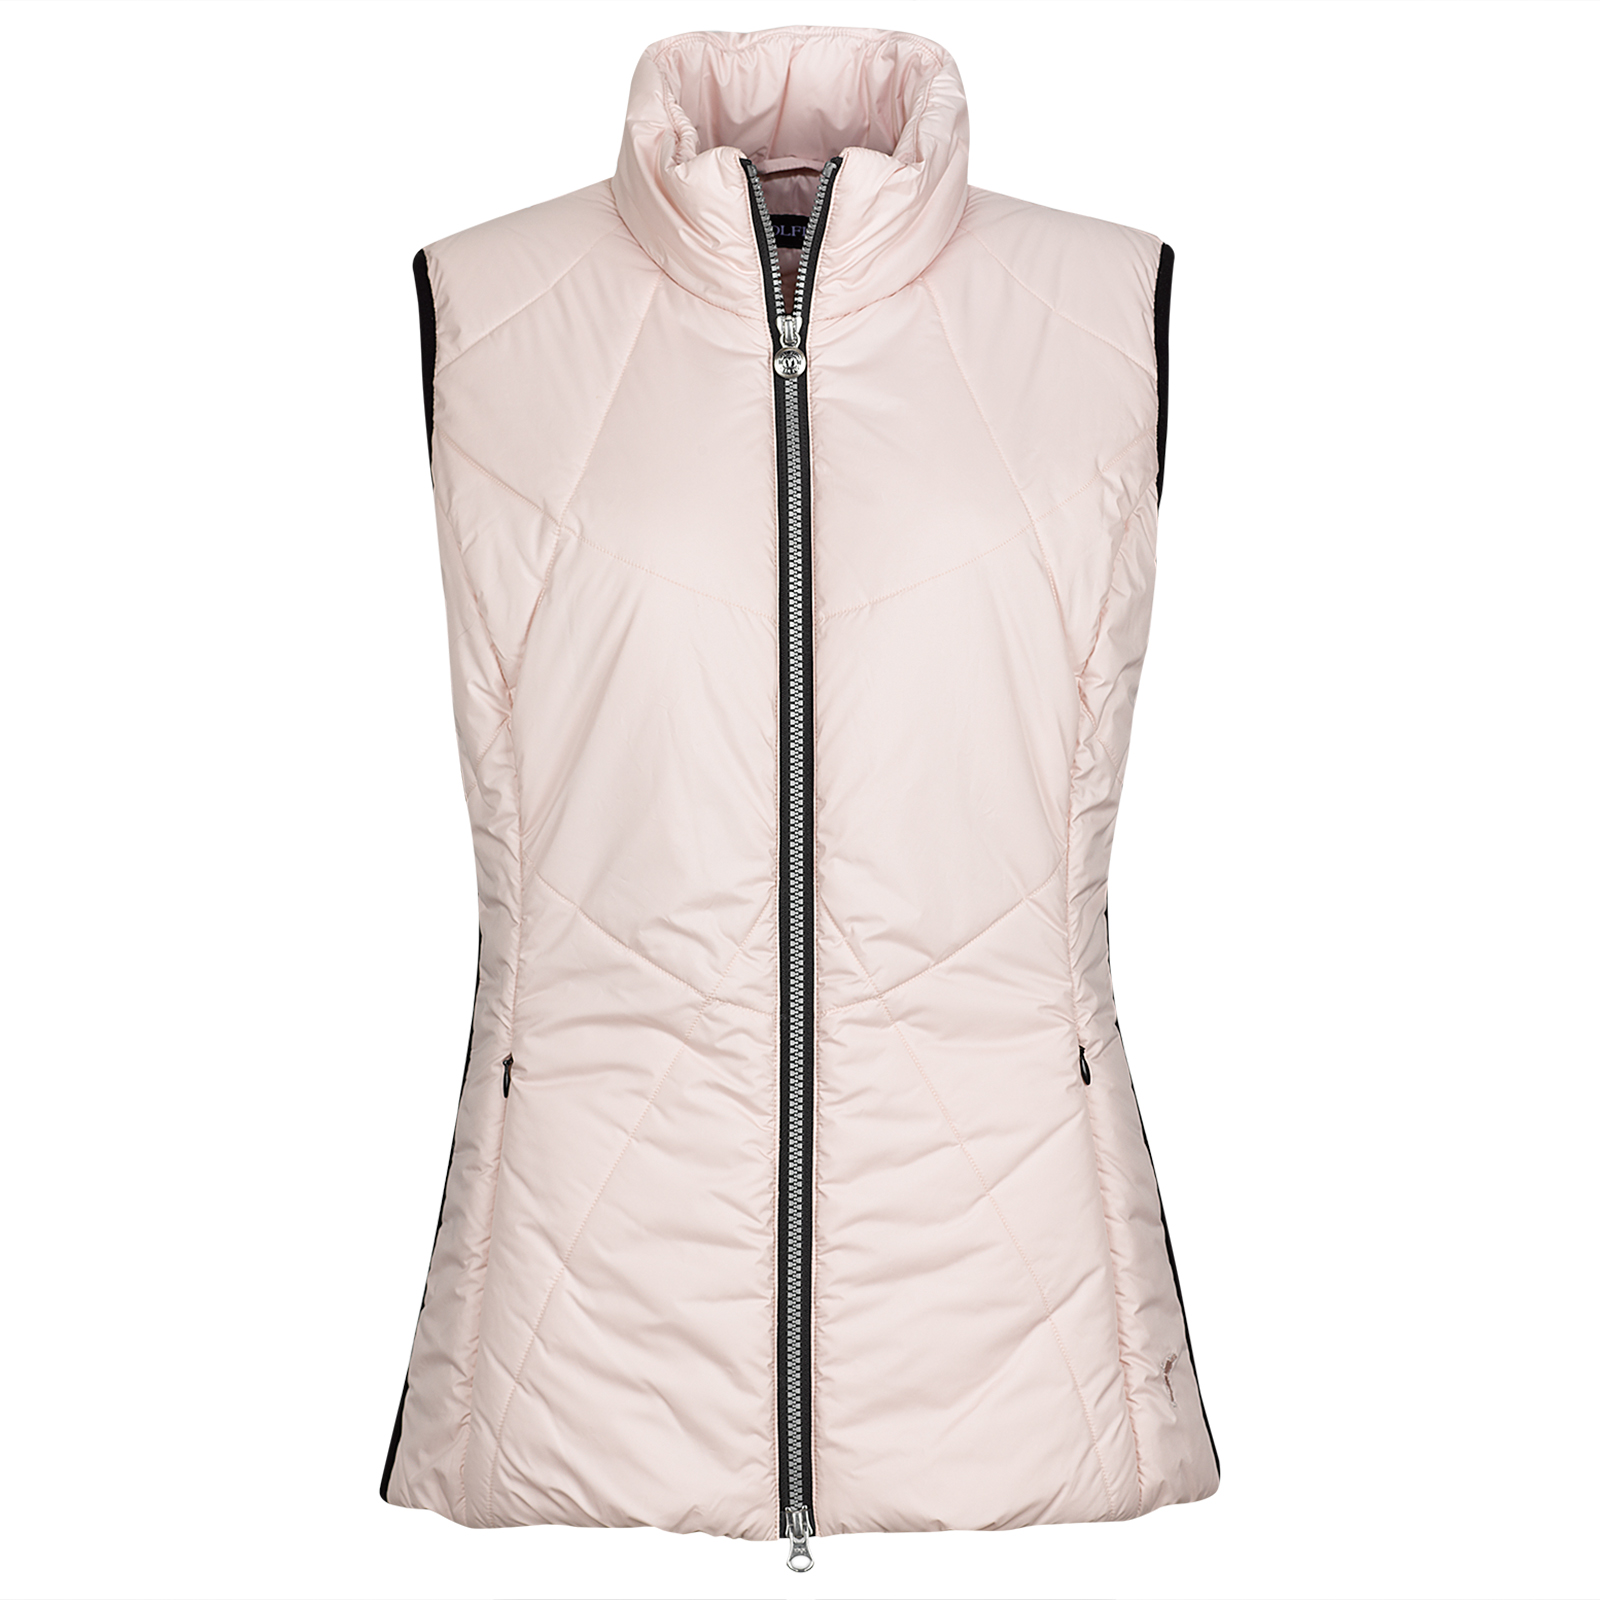 Ladies' sporty vest with Wind Protection and side stretch